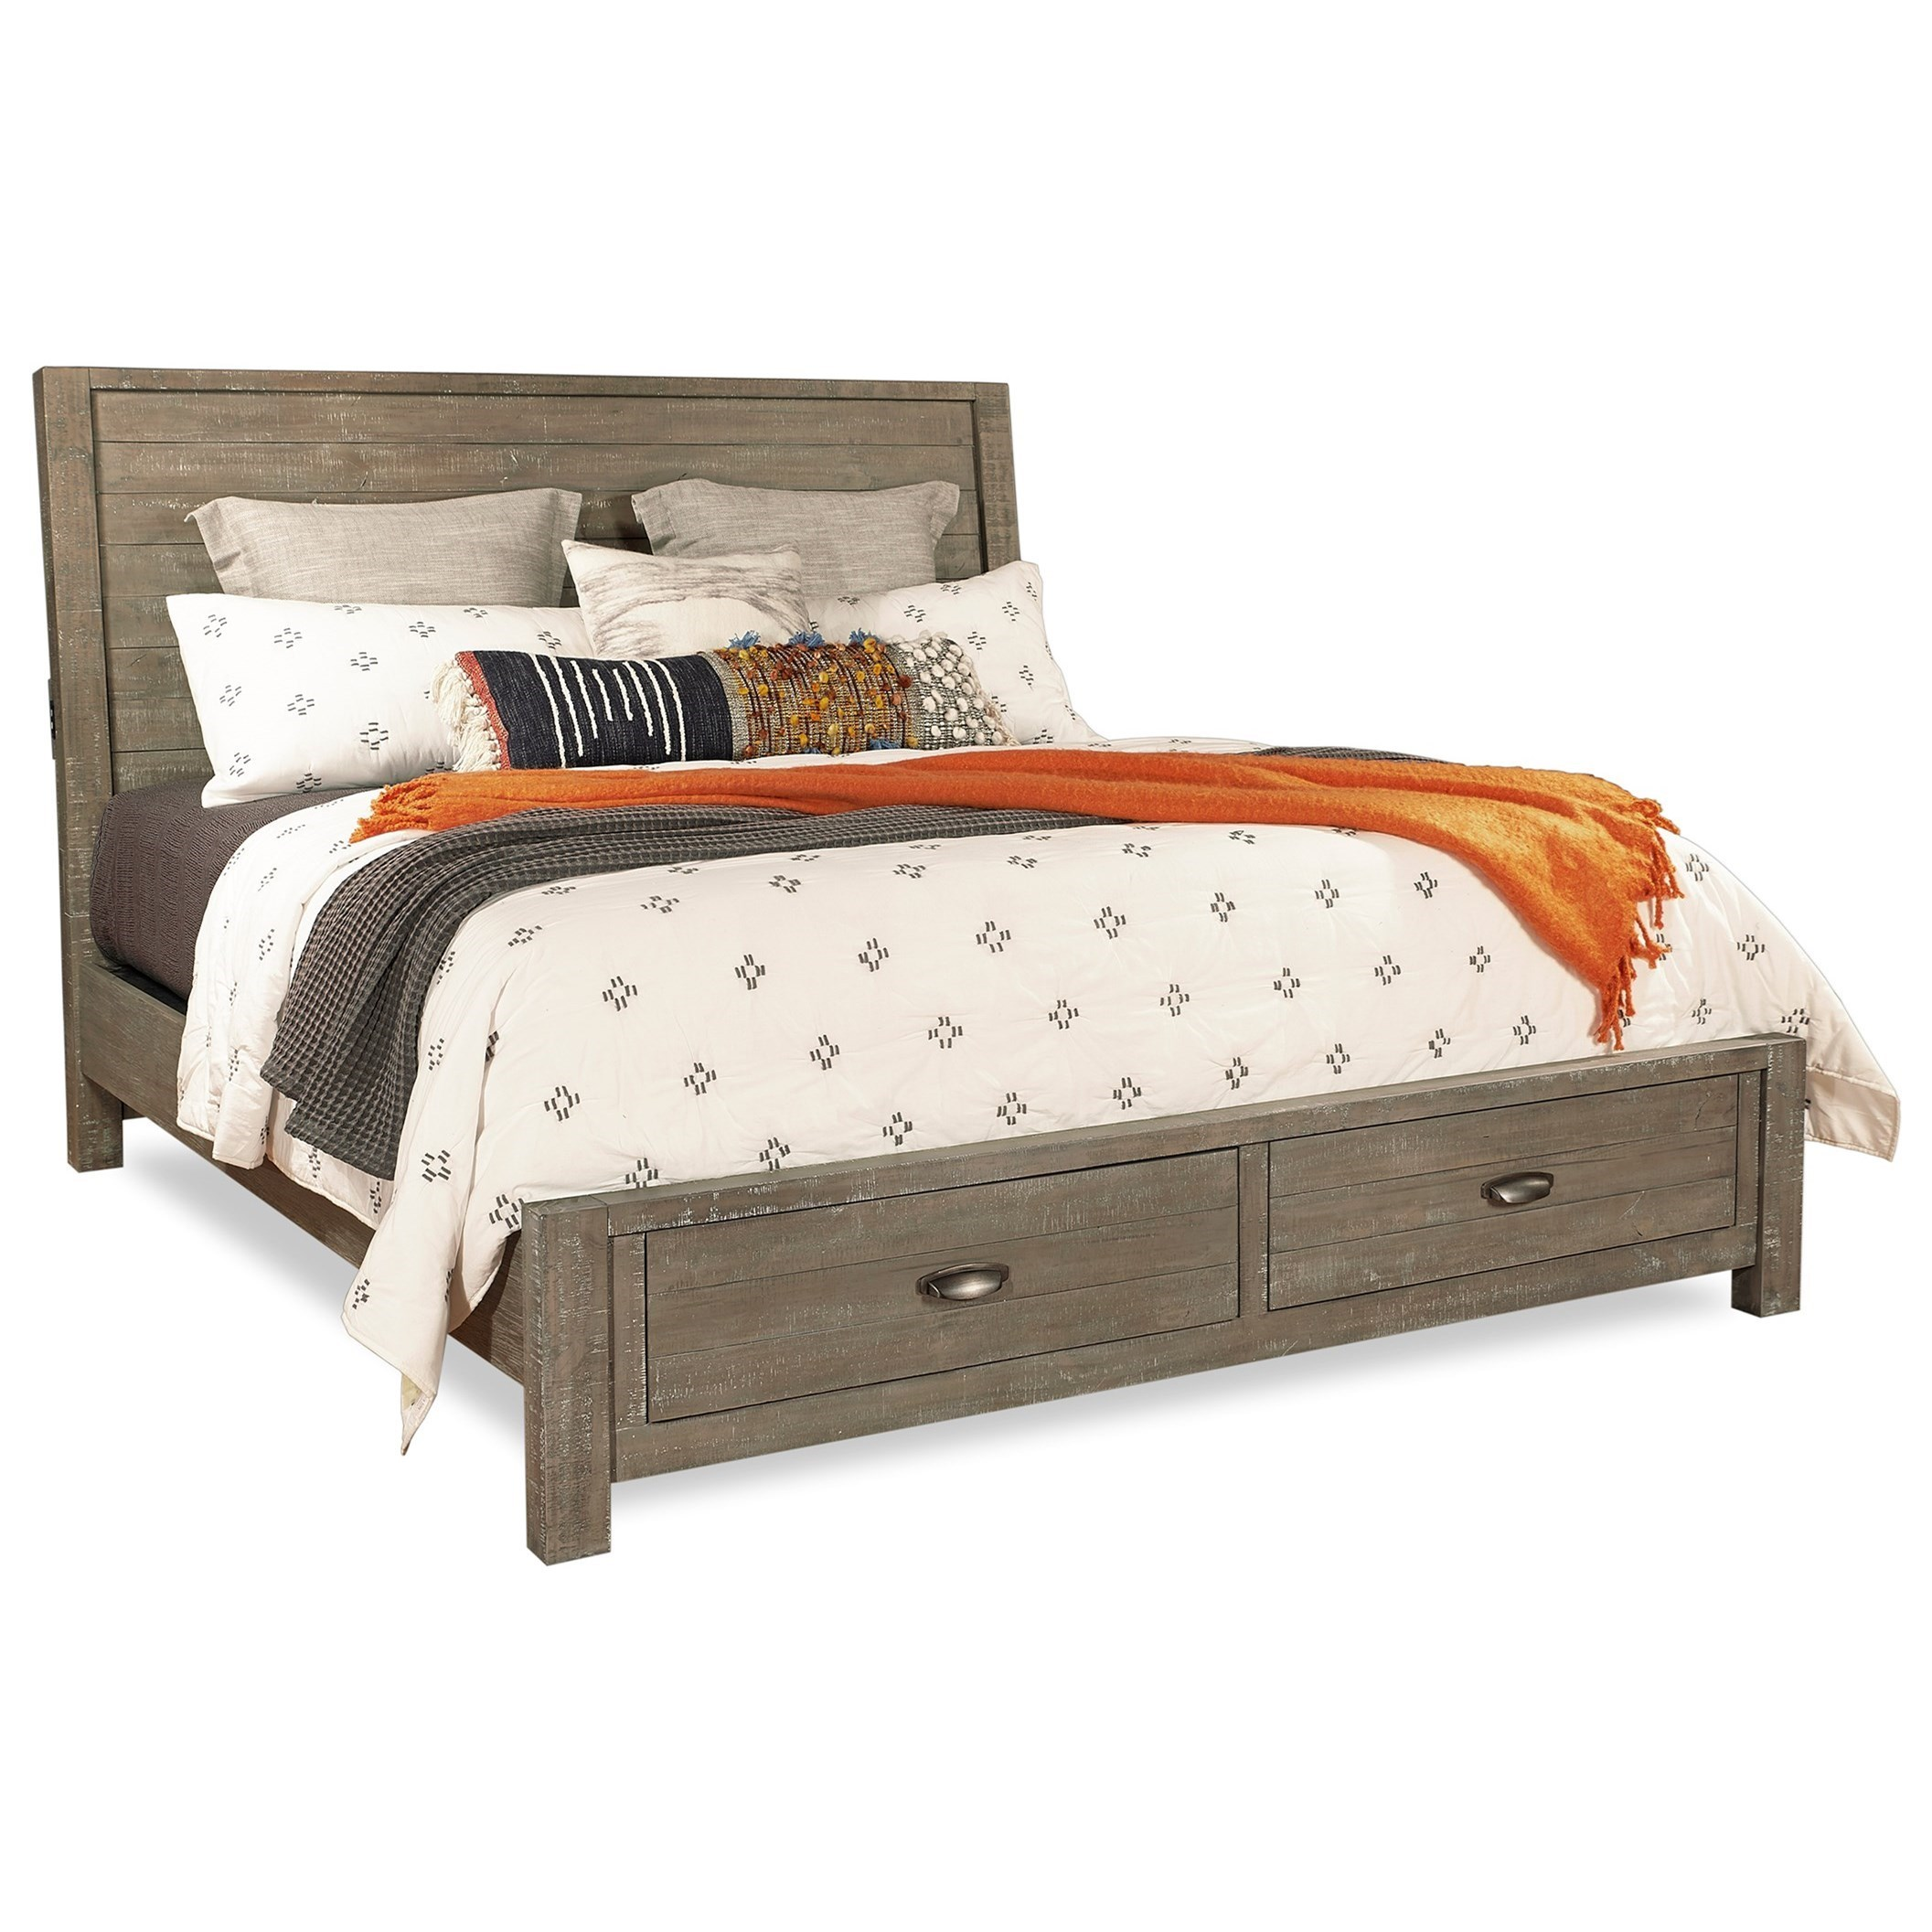 Queen Sleigh Storage Bed with Built-In USB Chargers